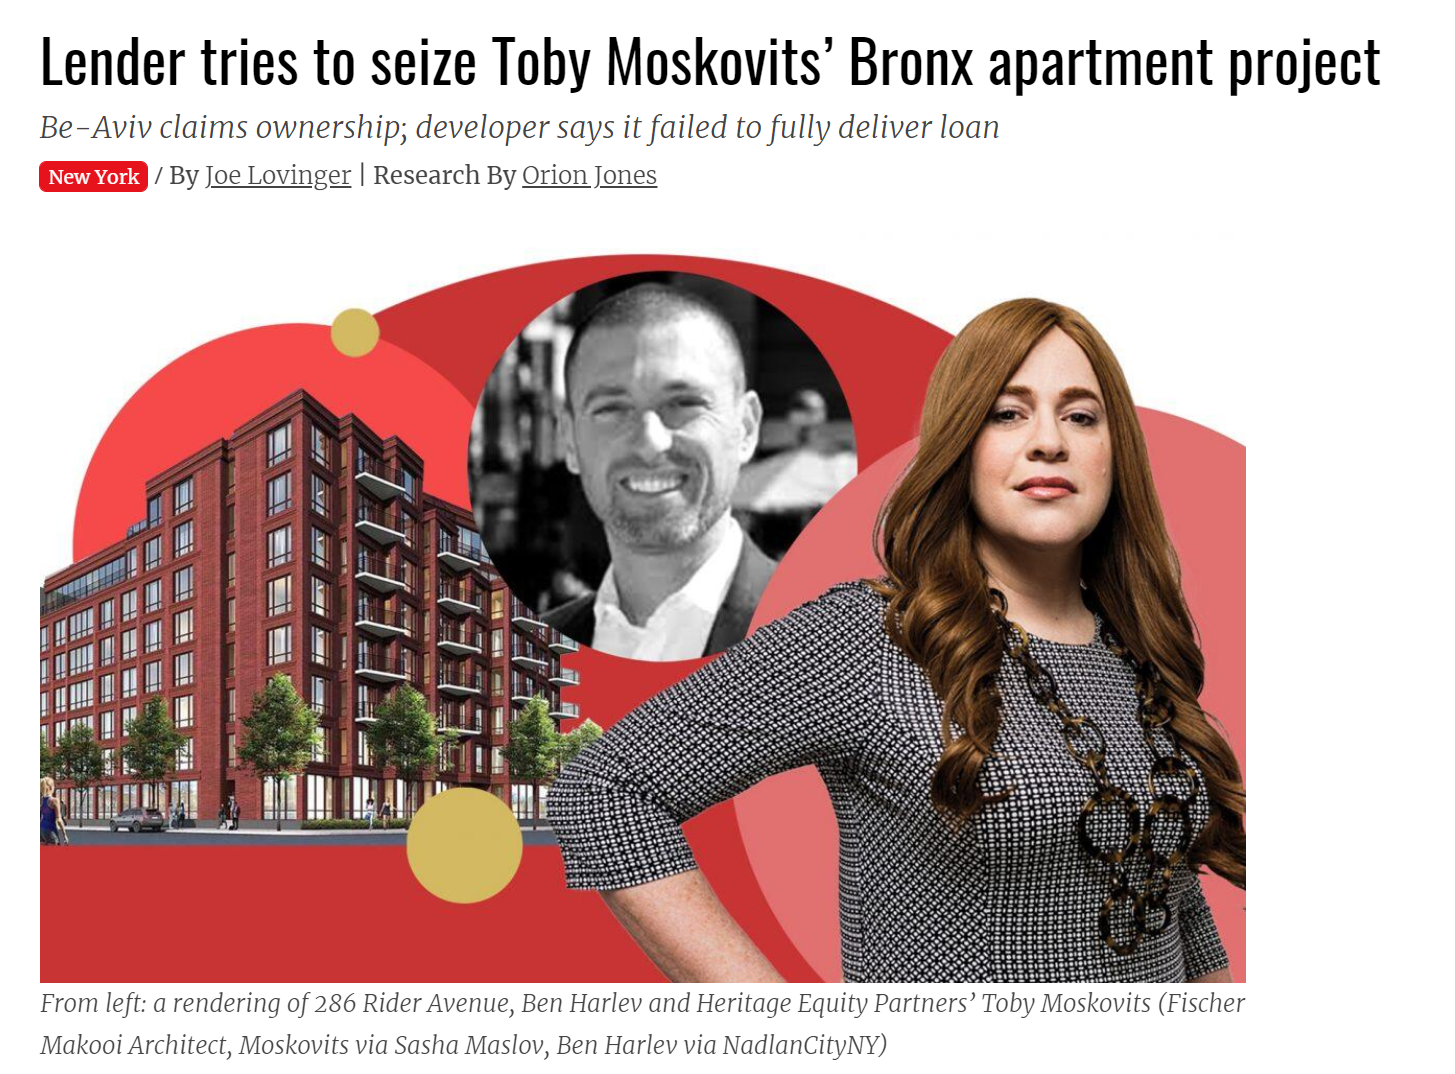 Lender tries to seize Toby Moskovits' Bronx apartment project